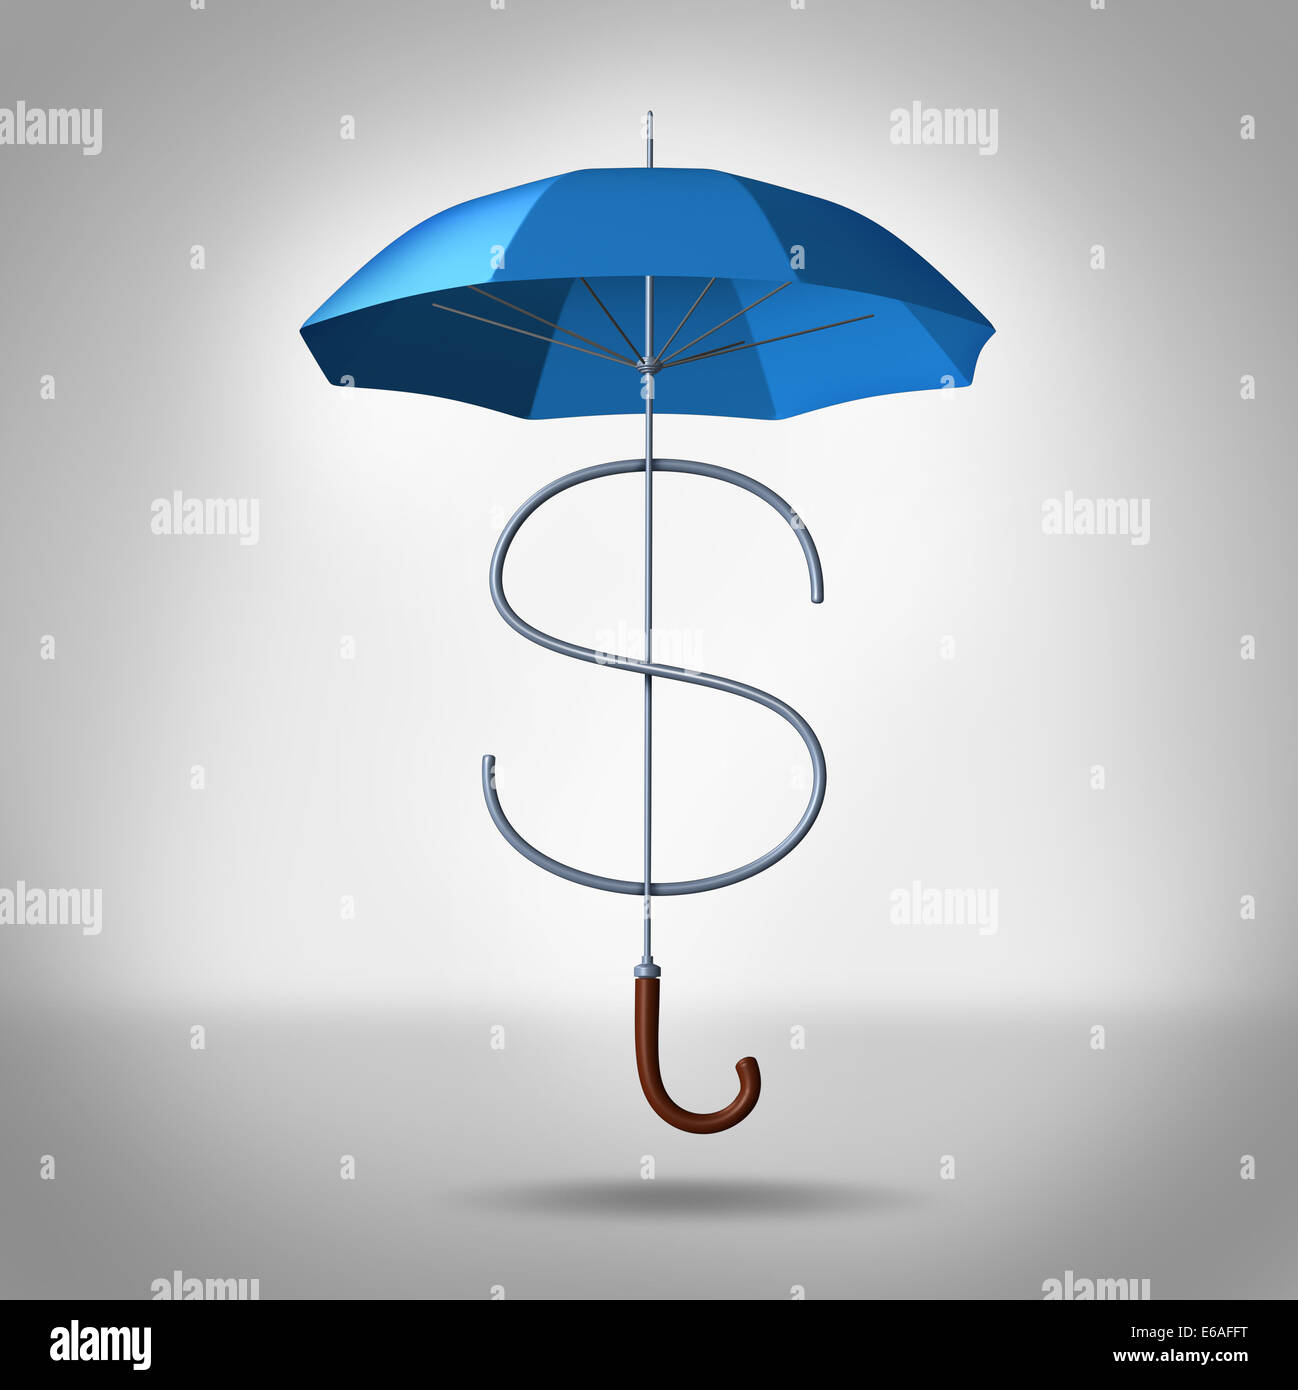 Tax shelter and security costs financial and business concept as a three dimensional umbrella shaped as a dollar - Stock Image